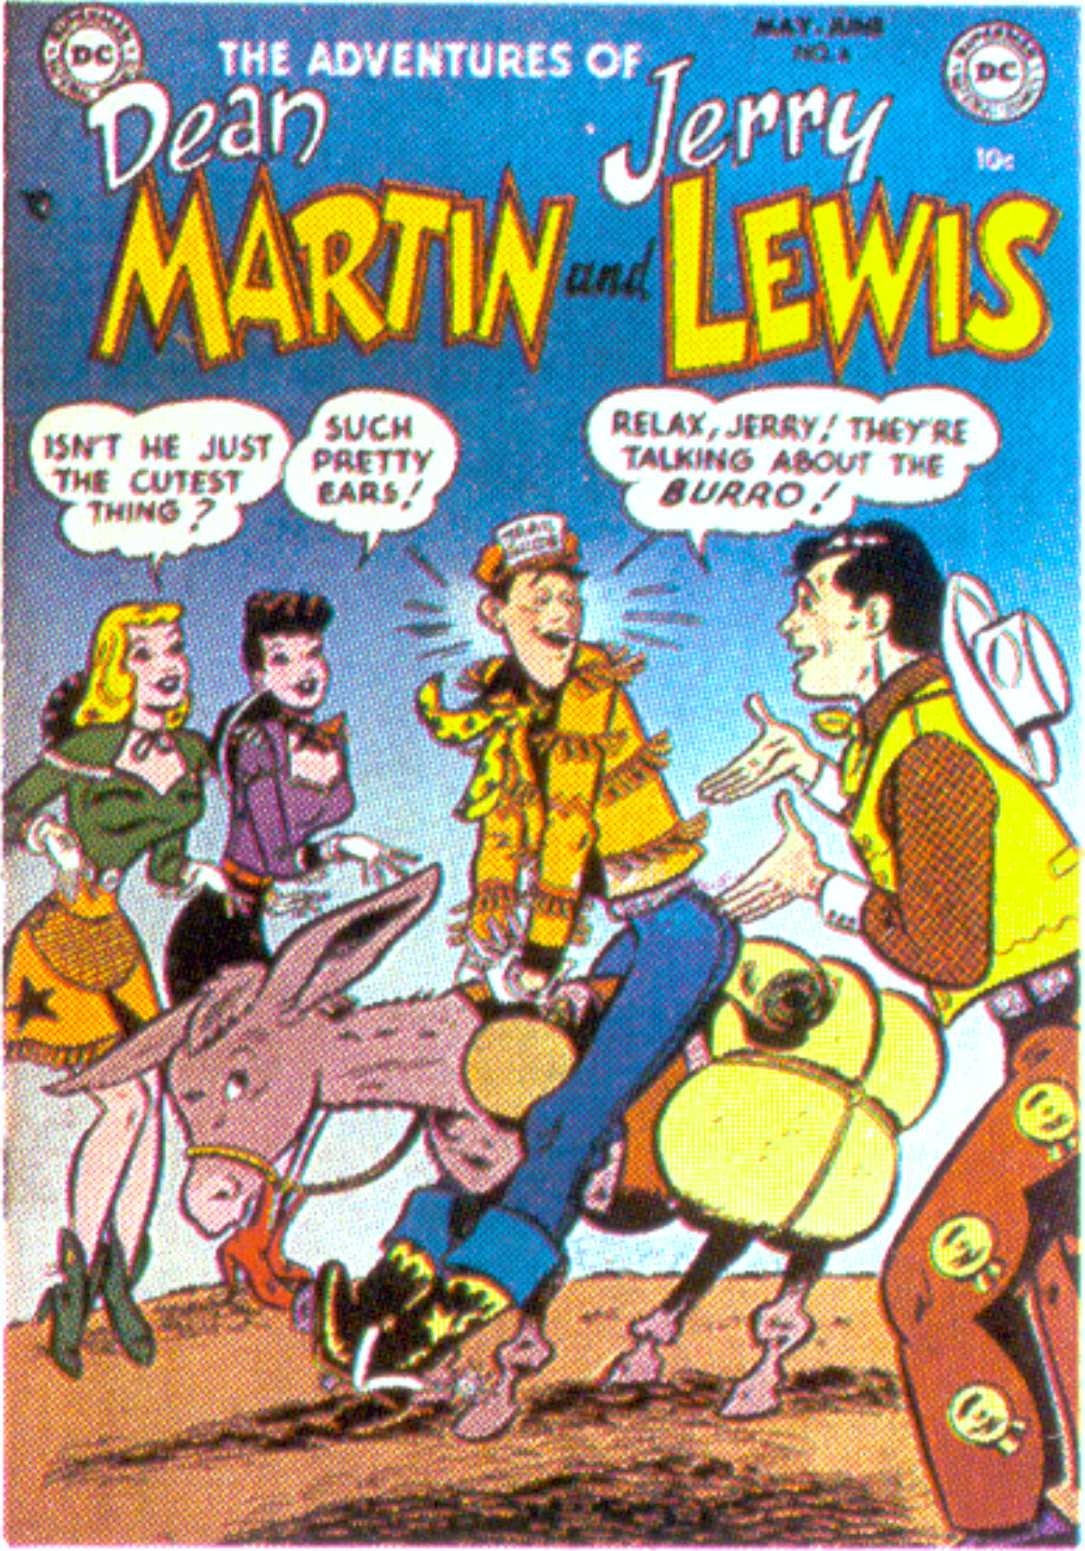 The Adventures of Dean Martin and Jerry Lewis 6 Page 1